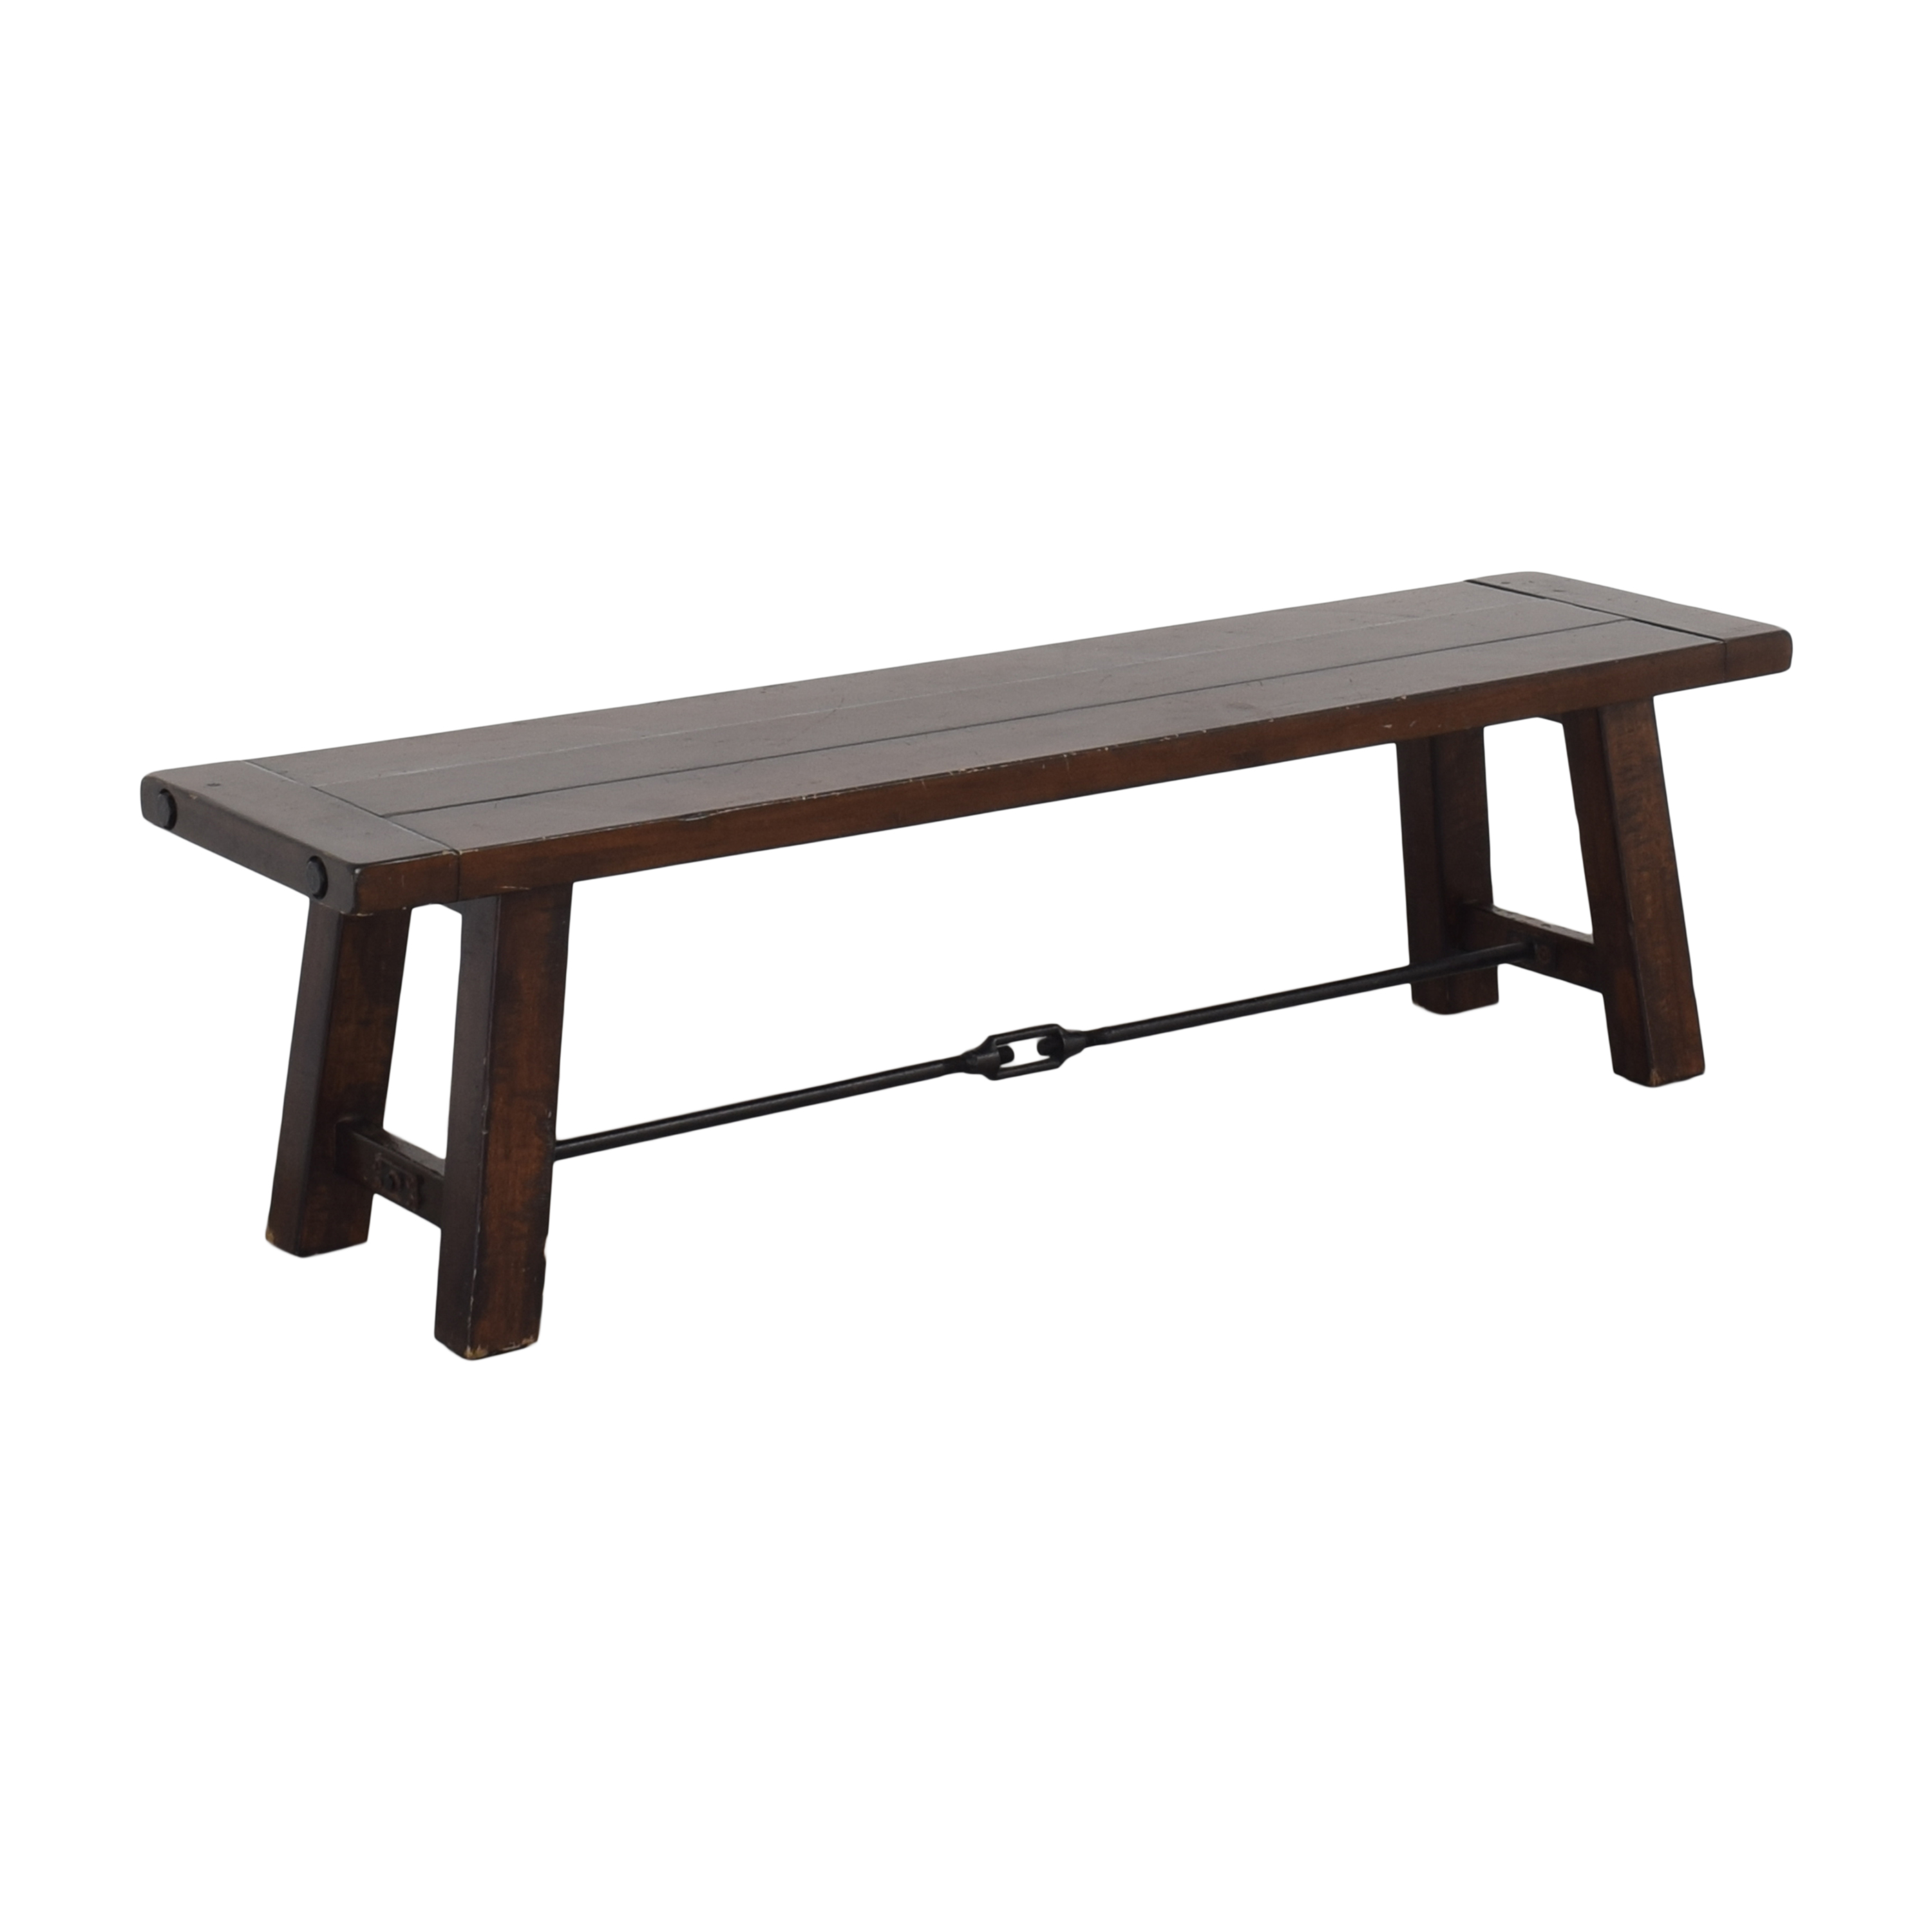 Pottery Barn Pottery Barn Benchwright Dining Room Bench discount